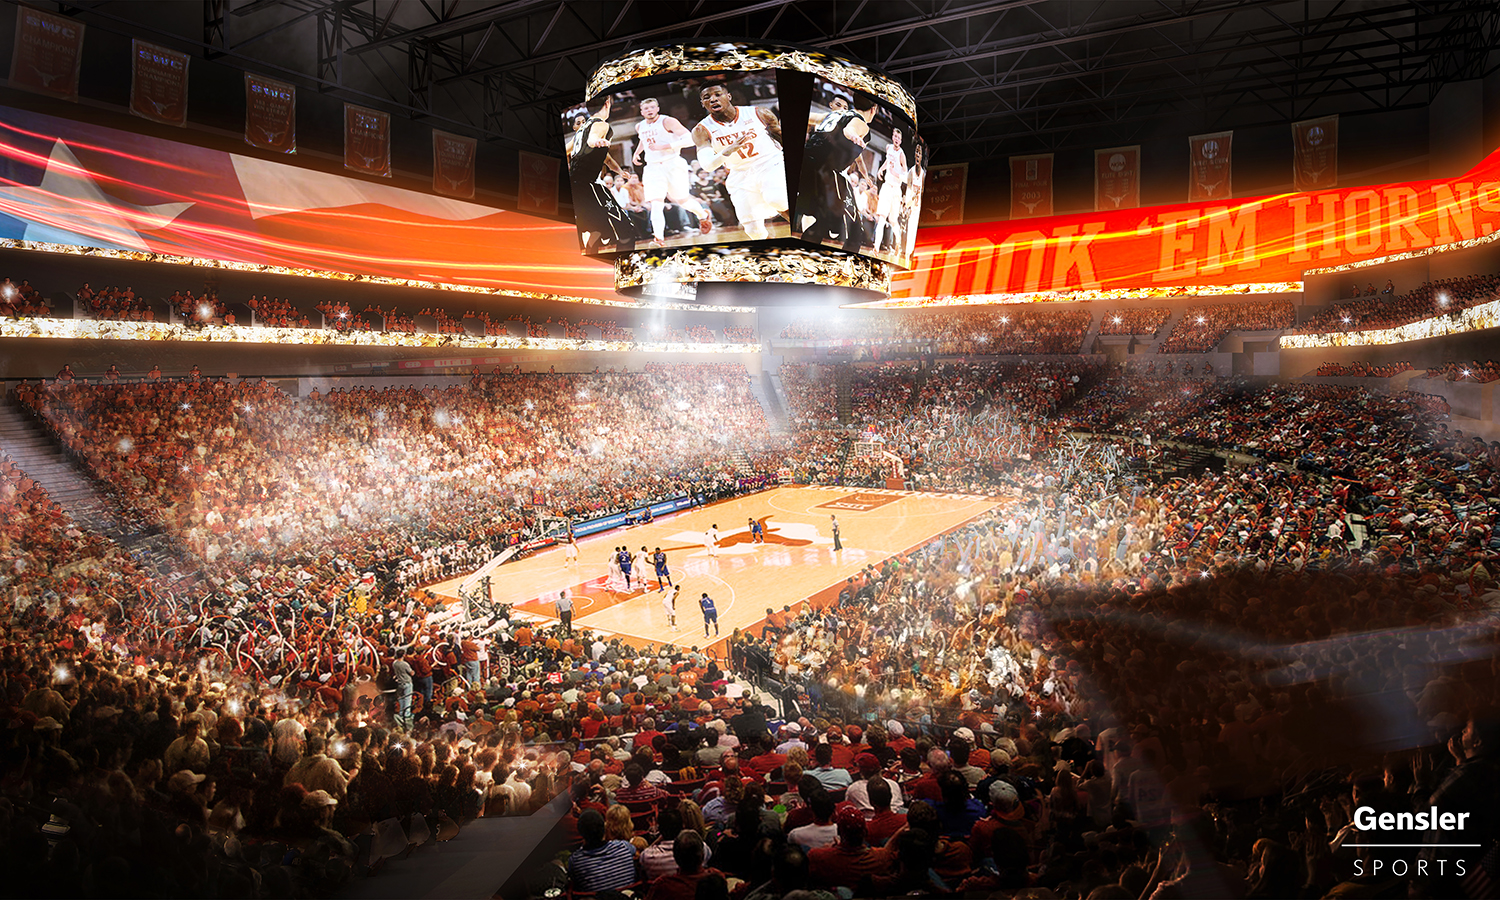 Texas Longhorns basketball arena